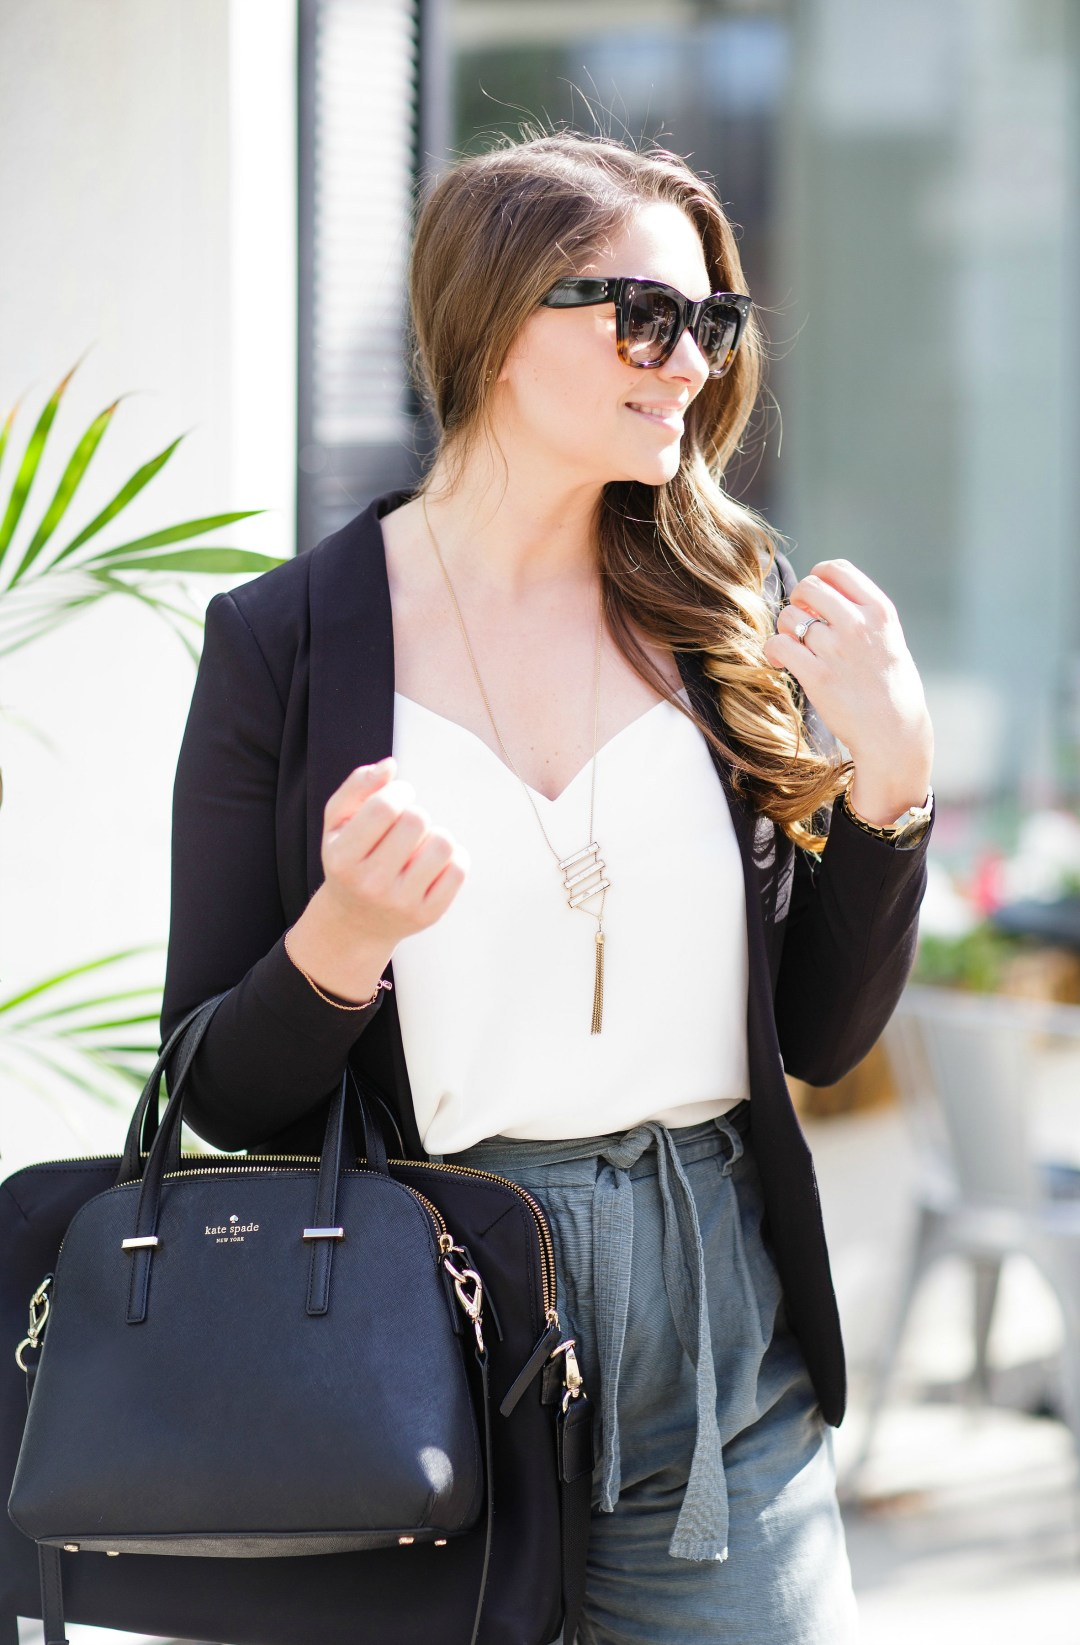 working-girl-office-outfit-wide-leg-pants-black-blazer-celine-sunglasses-kate-spade-laptop-bag-rosecitystyleguide-canadian-blogger-13